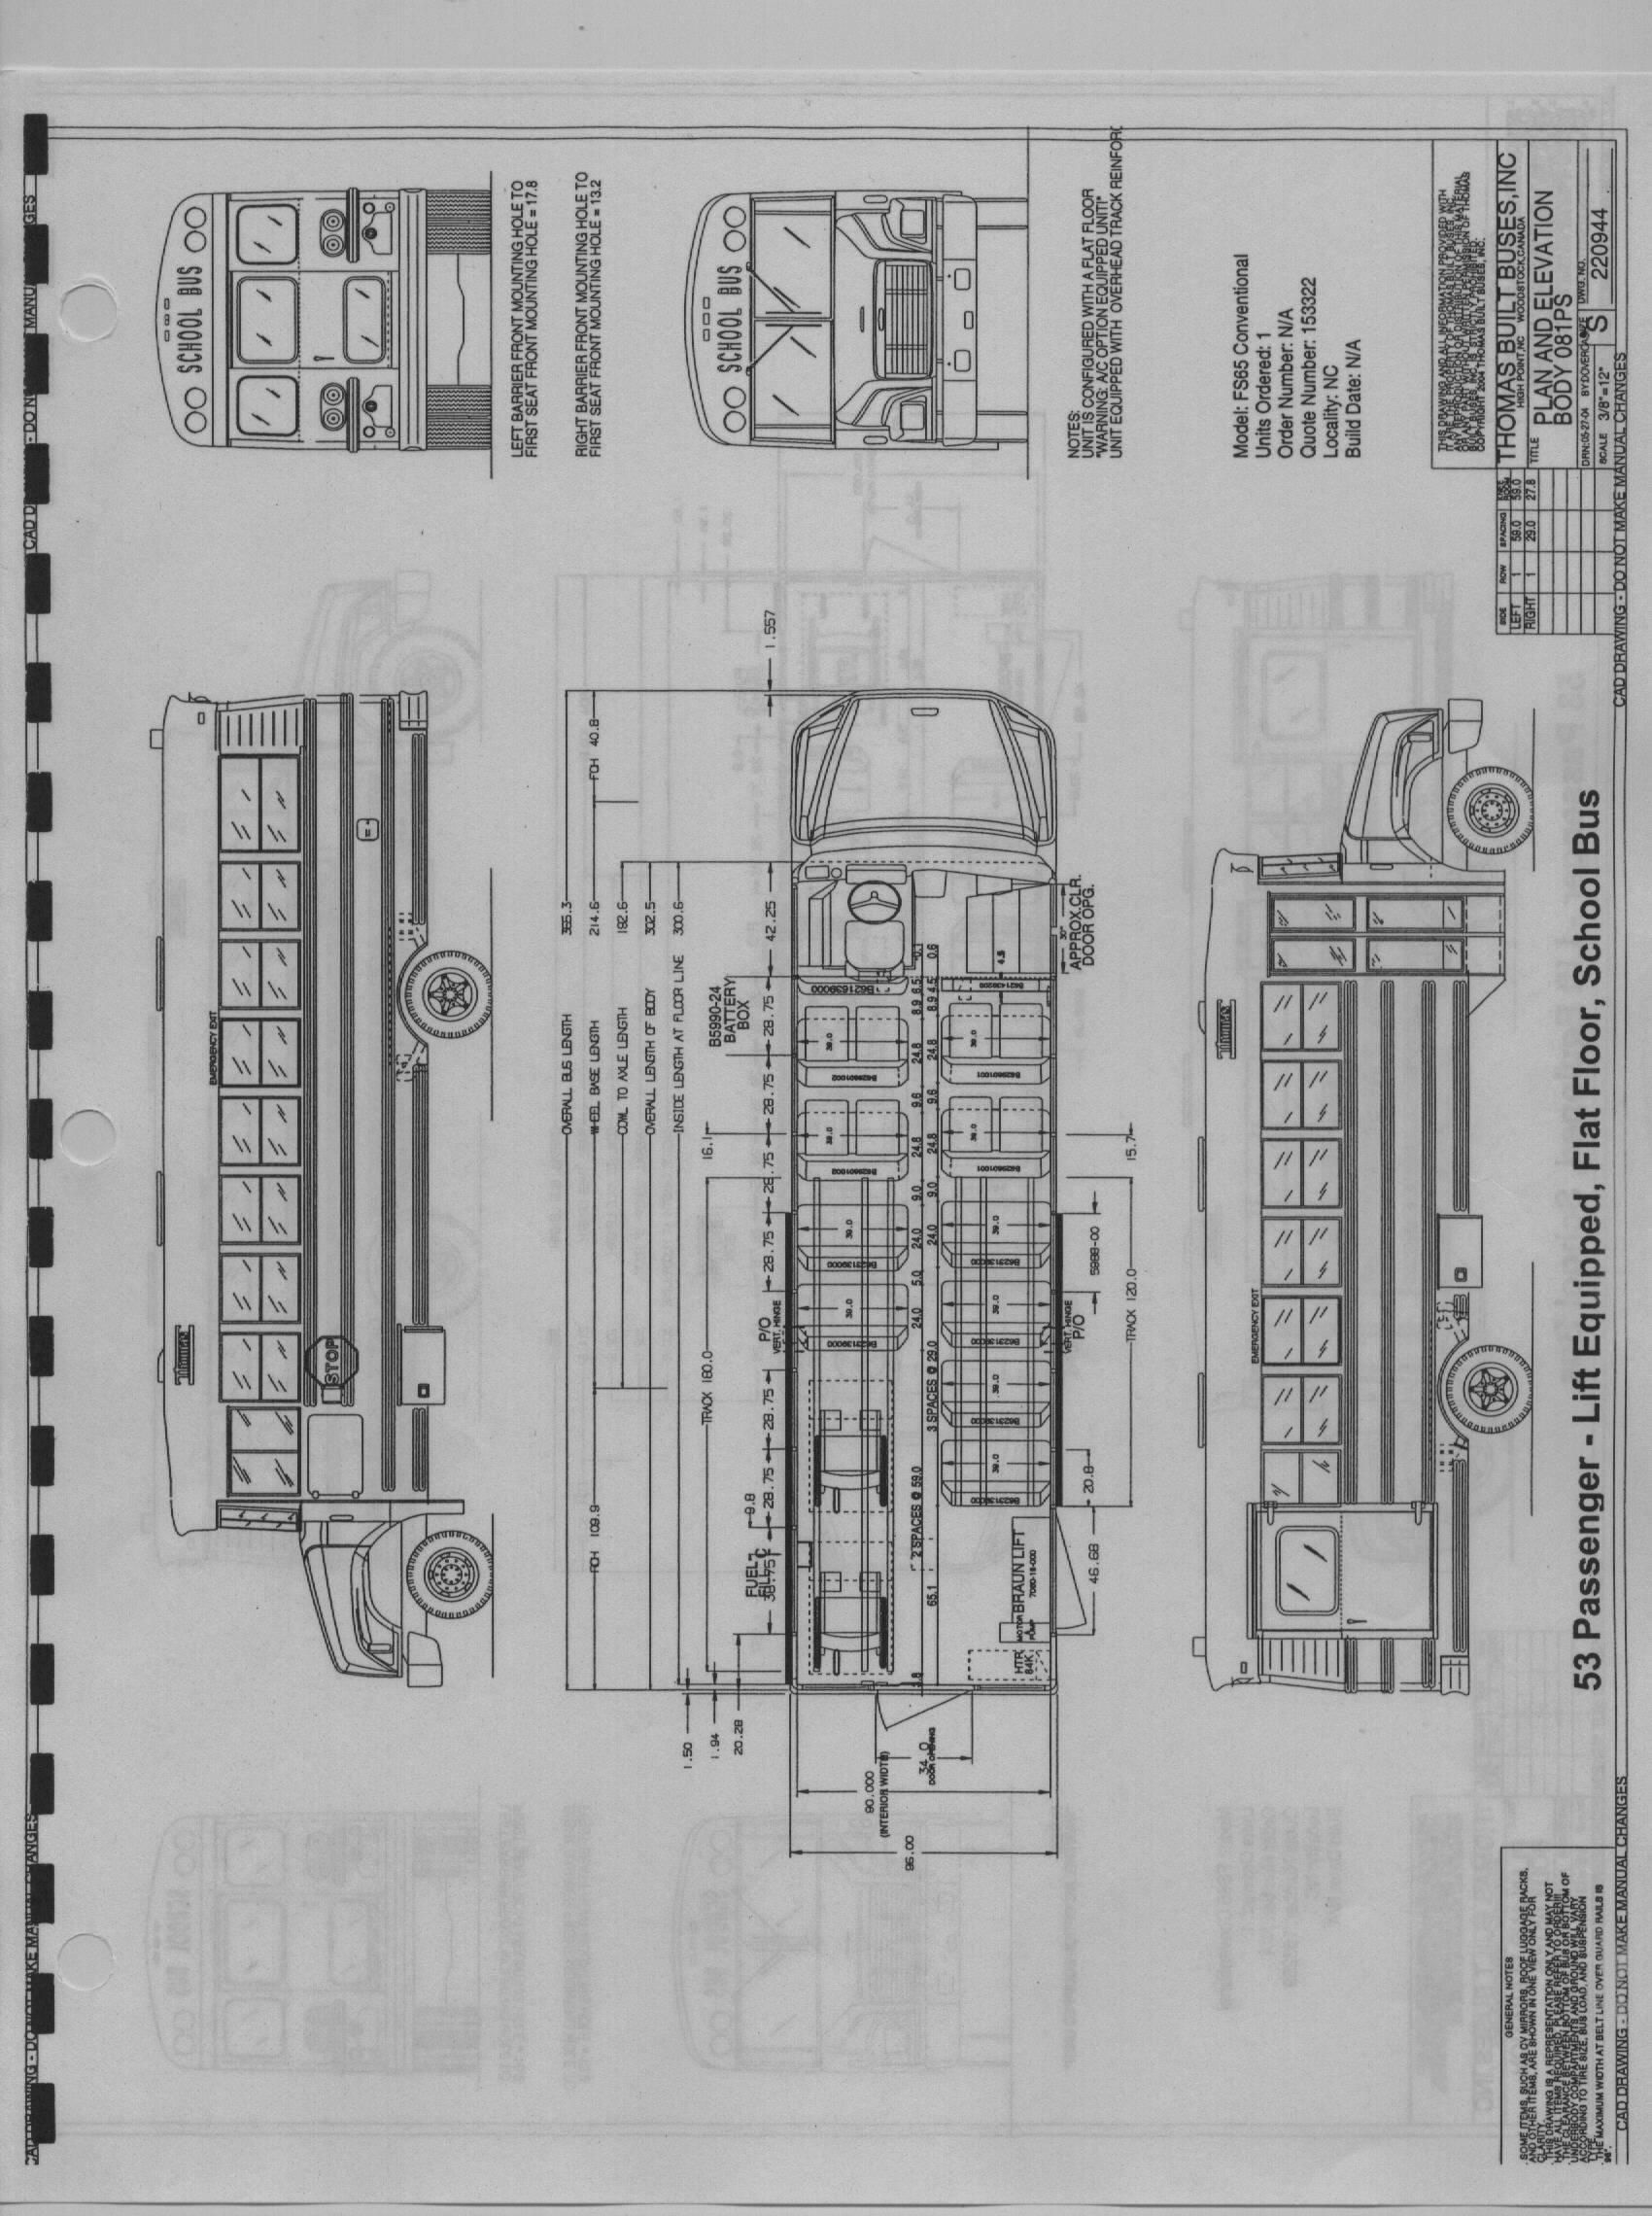 international school bus engine diagram